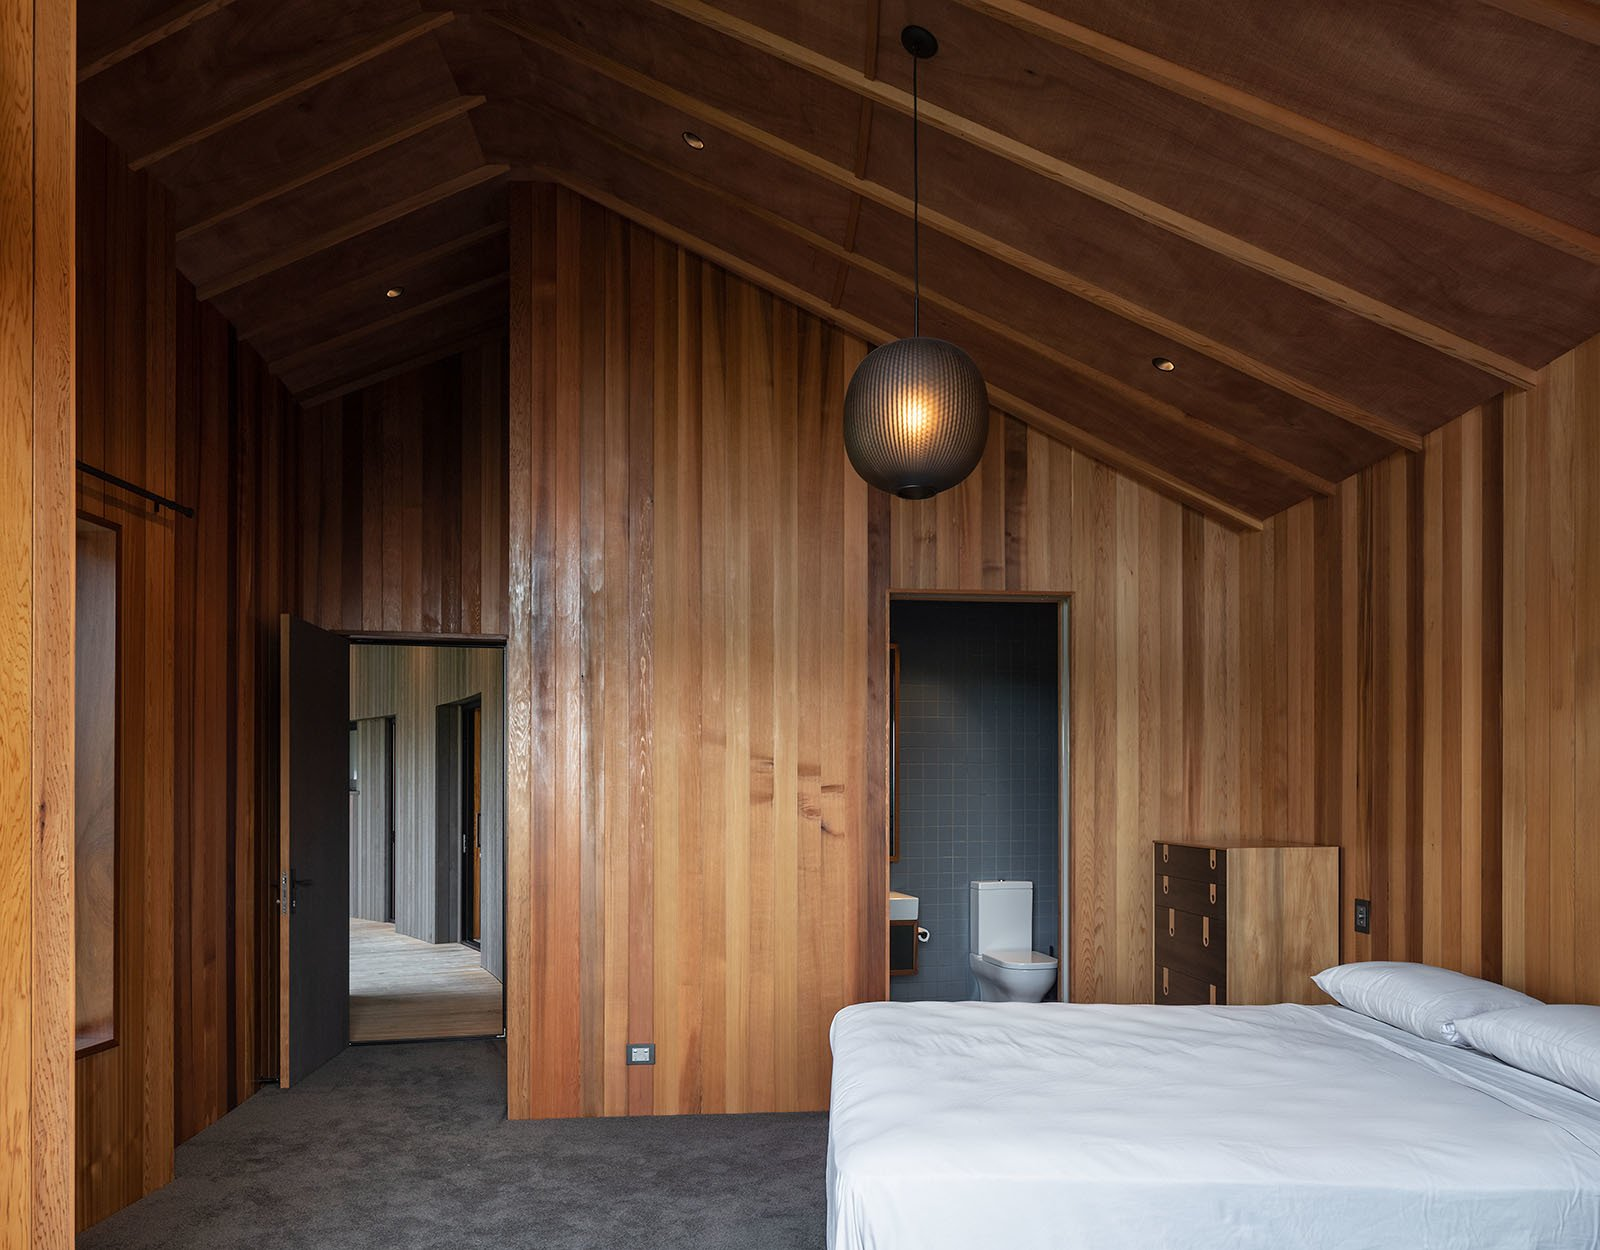 Photo 12 of 112 in A Curved Holiday Home Nestles Into a Spectacular